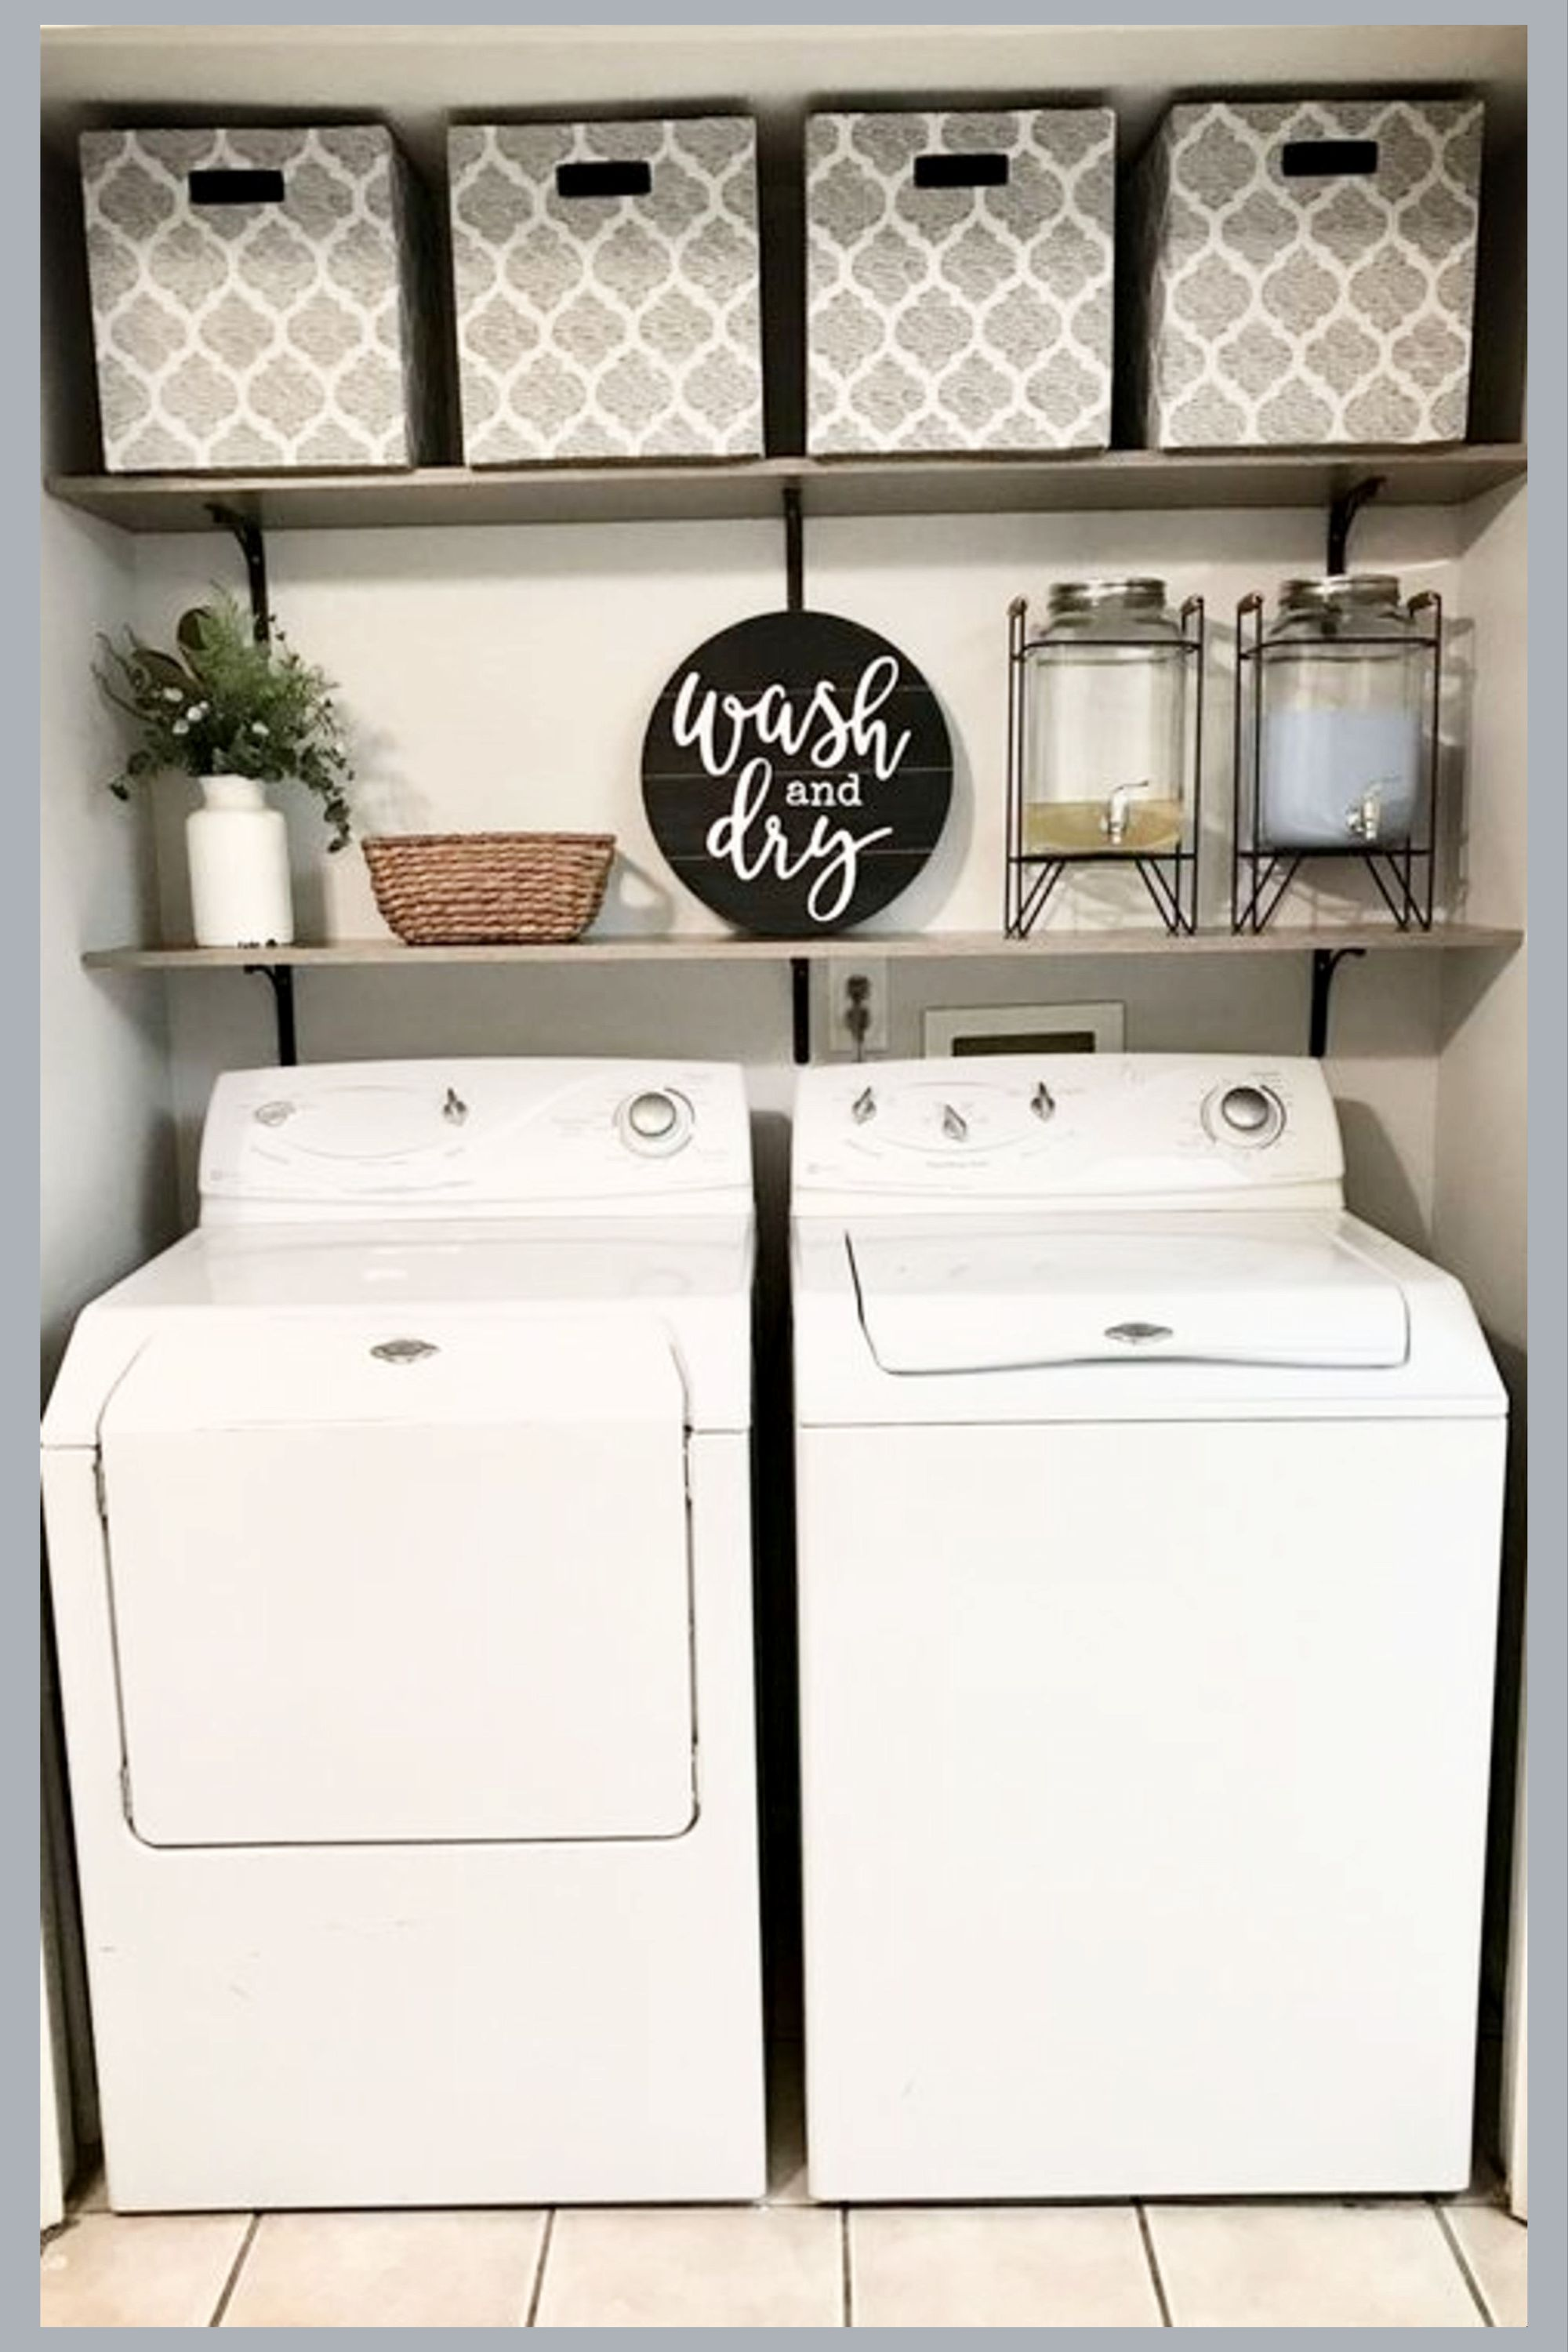 Small Laundry Room Ideas Space Saving Ideas For Tiny Laundry Rooms Creative And Simple Diy Laundry Room Diy Tiny Laundry Rooms Laundry Room Storage